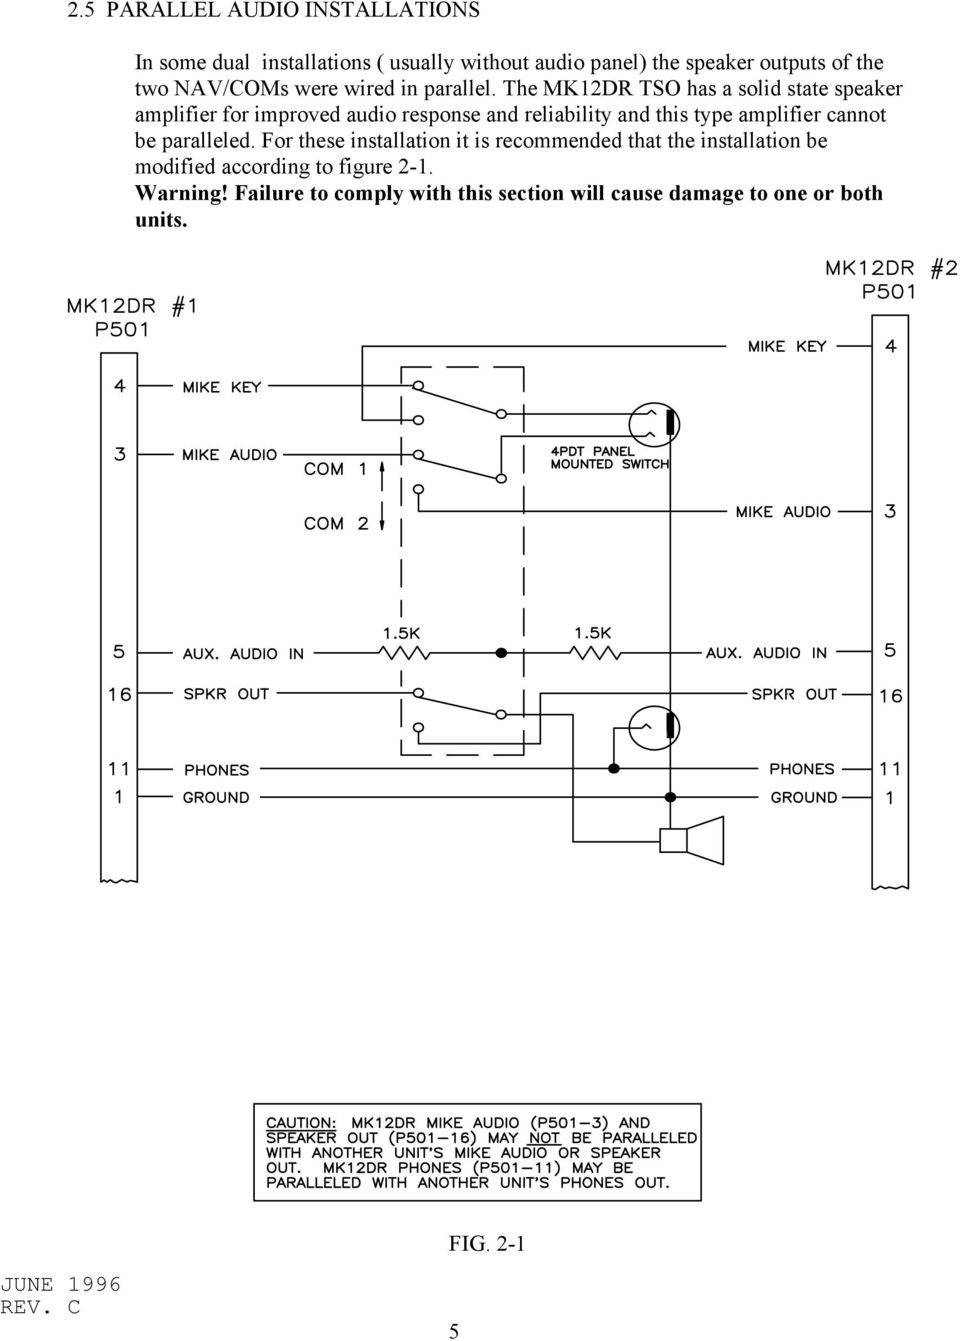 Wiring Diagram Manual Kx 155 Mk12d Tso Mk12 Mk12a Mk12b Replacement Radio Pdf The Mk12dr Has A Solid State Speaker Amplifier For Improved Audio Response And Reliability